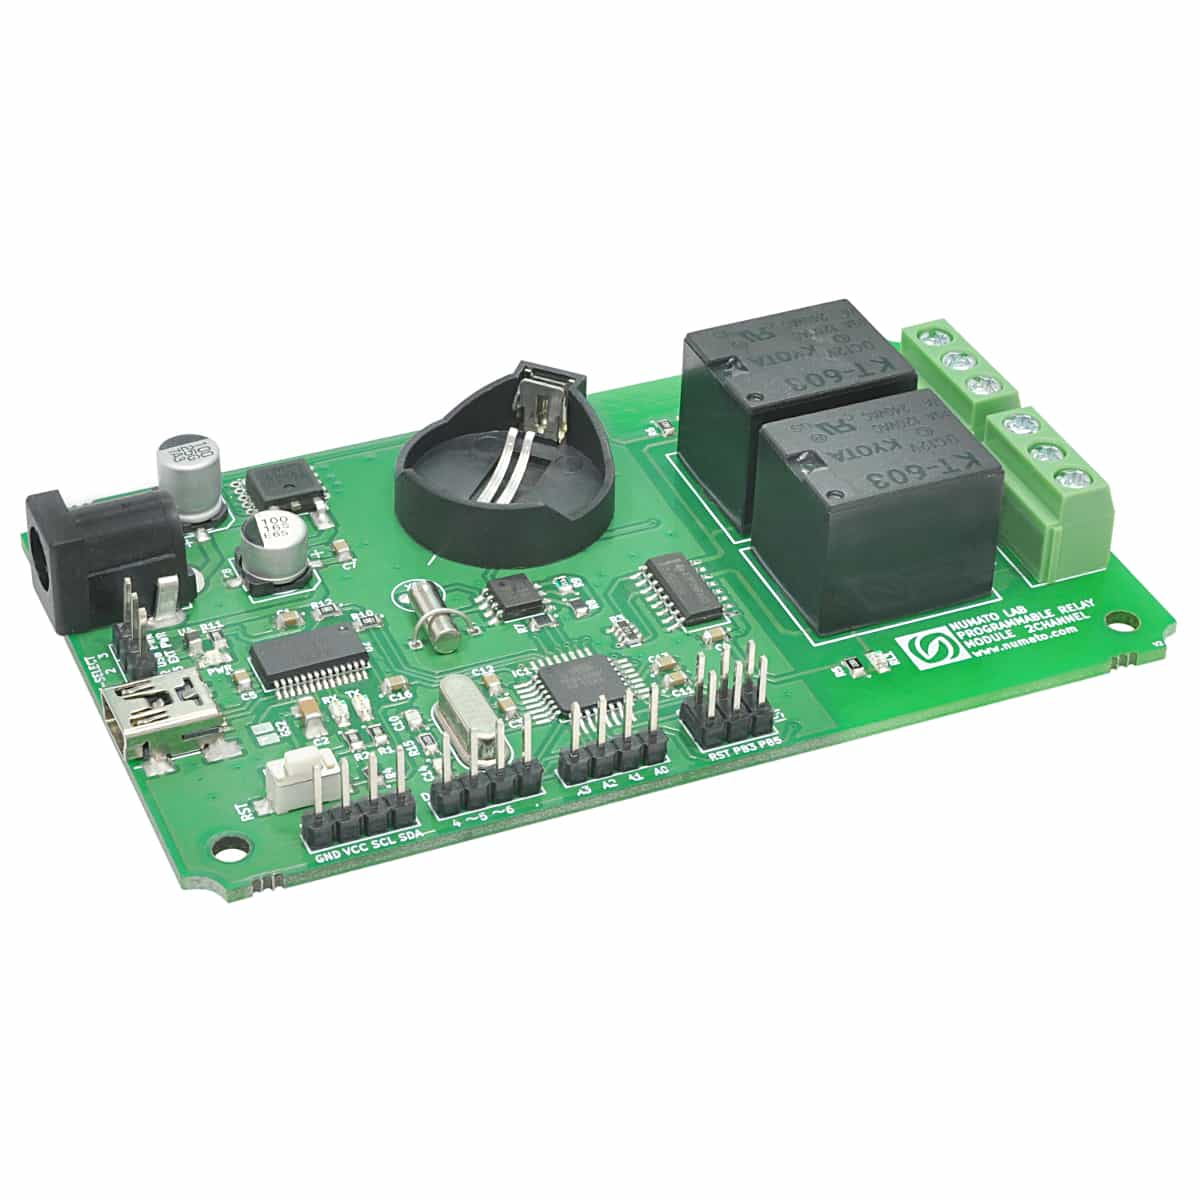 Relay Controllers With Dpdt Solid State Spdt Relays Numato Lab 2 Channel Board Programmable Module